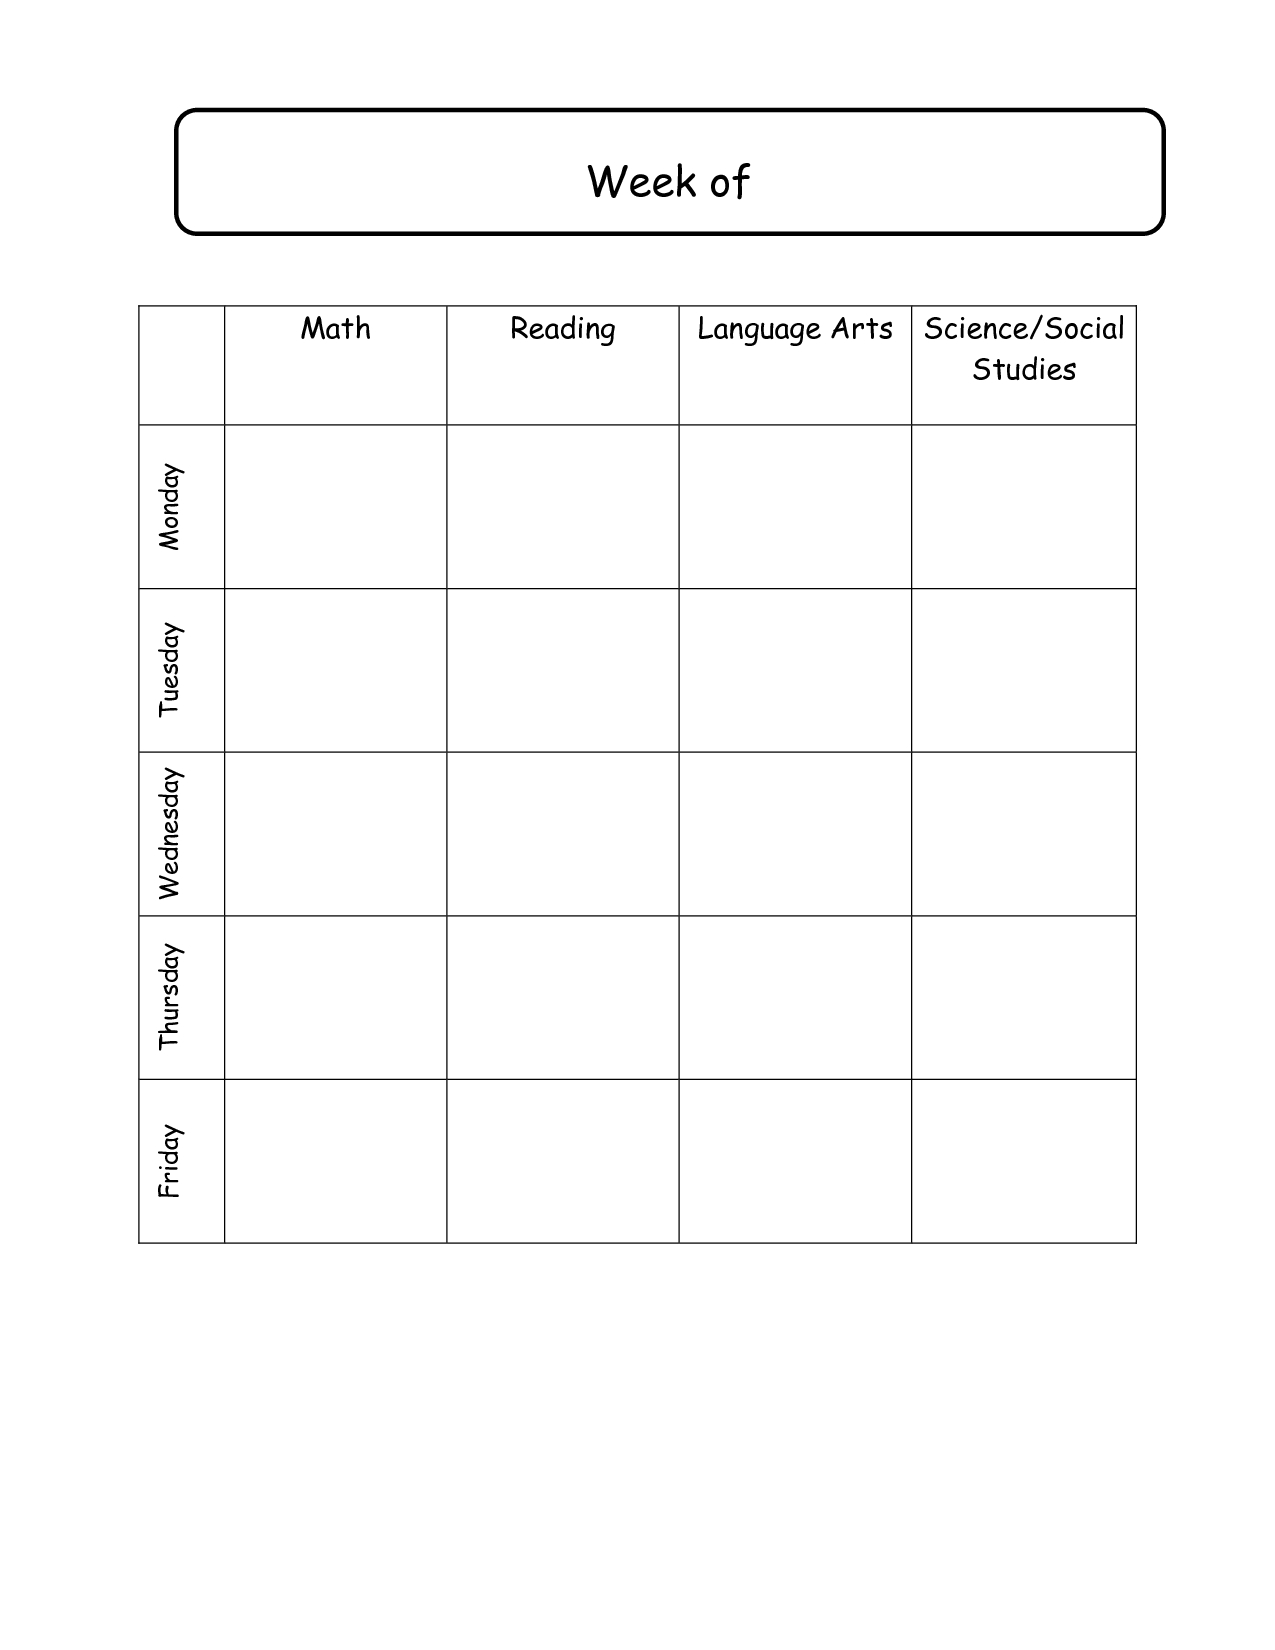 Weekly Lesson Plans Template | Weekly Lesson Plan Template